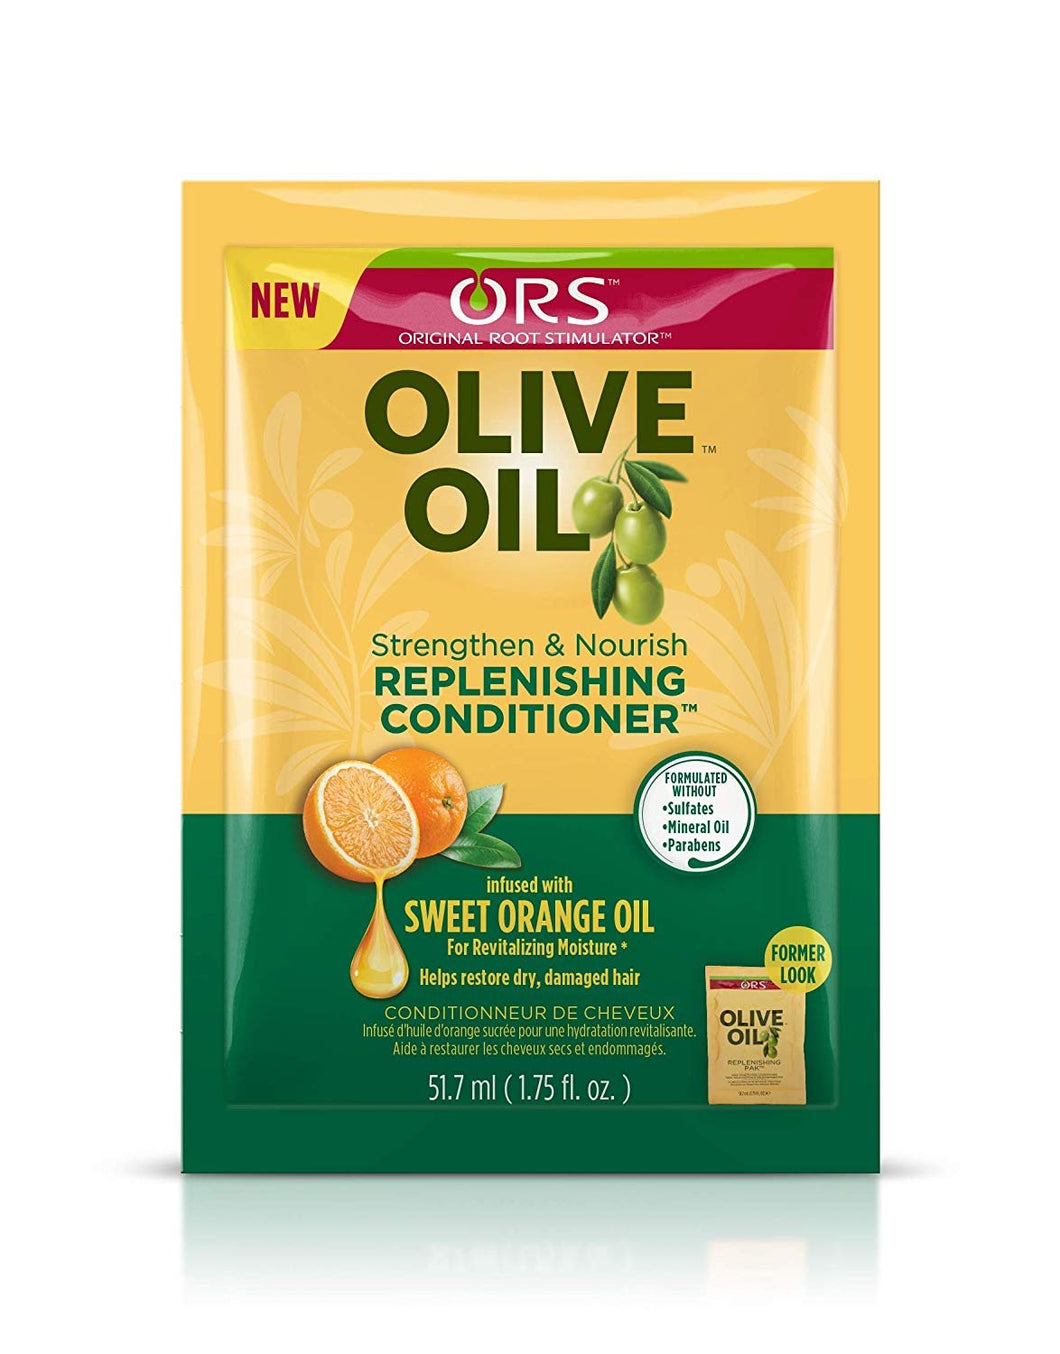 ORS Olive Oil Replenish Conditioner infused with Sweet Orange Oil